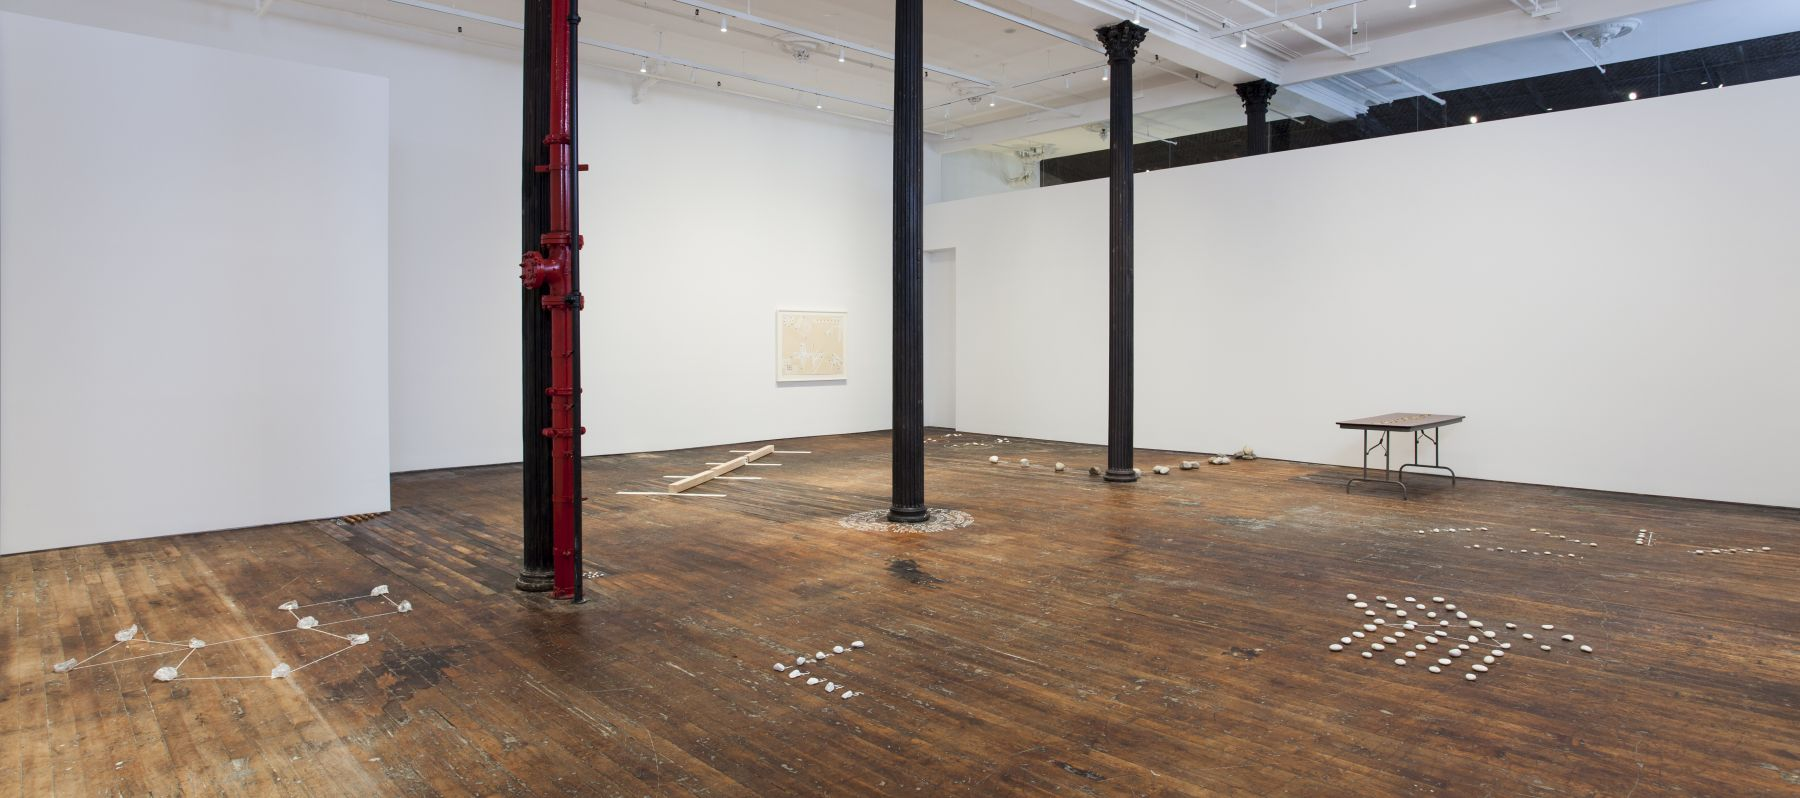 Mel Bochner, Proposition and Process: A Theory of Sculpture (1968 - 1973) – installation view 1